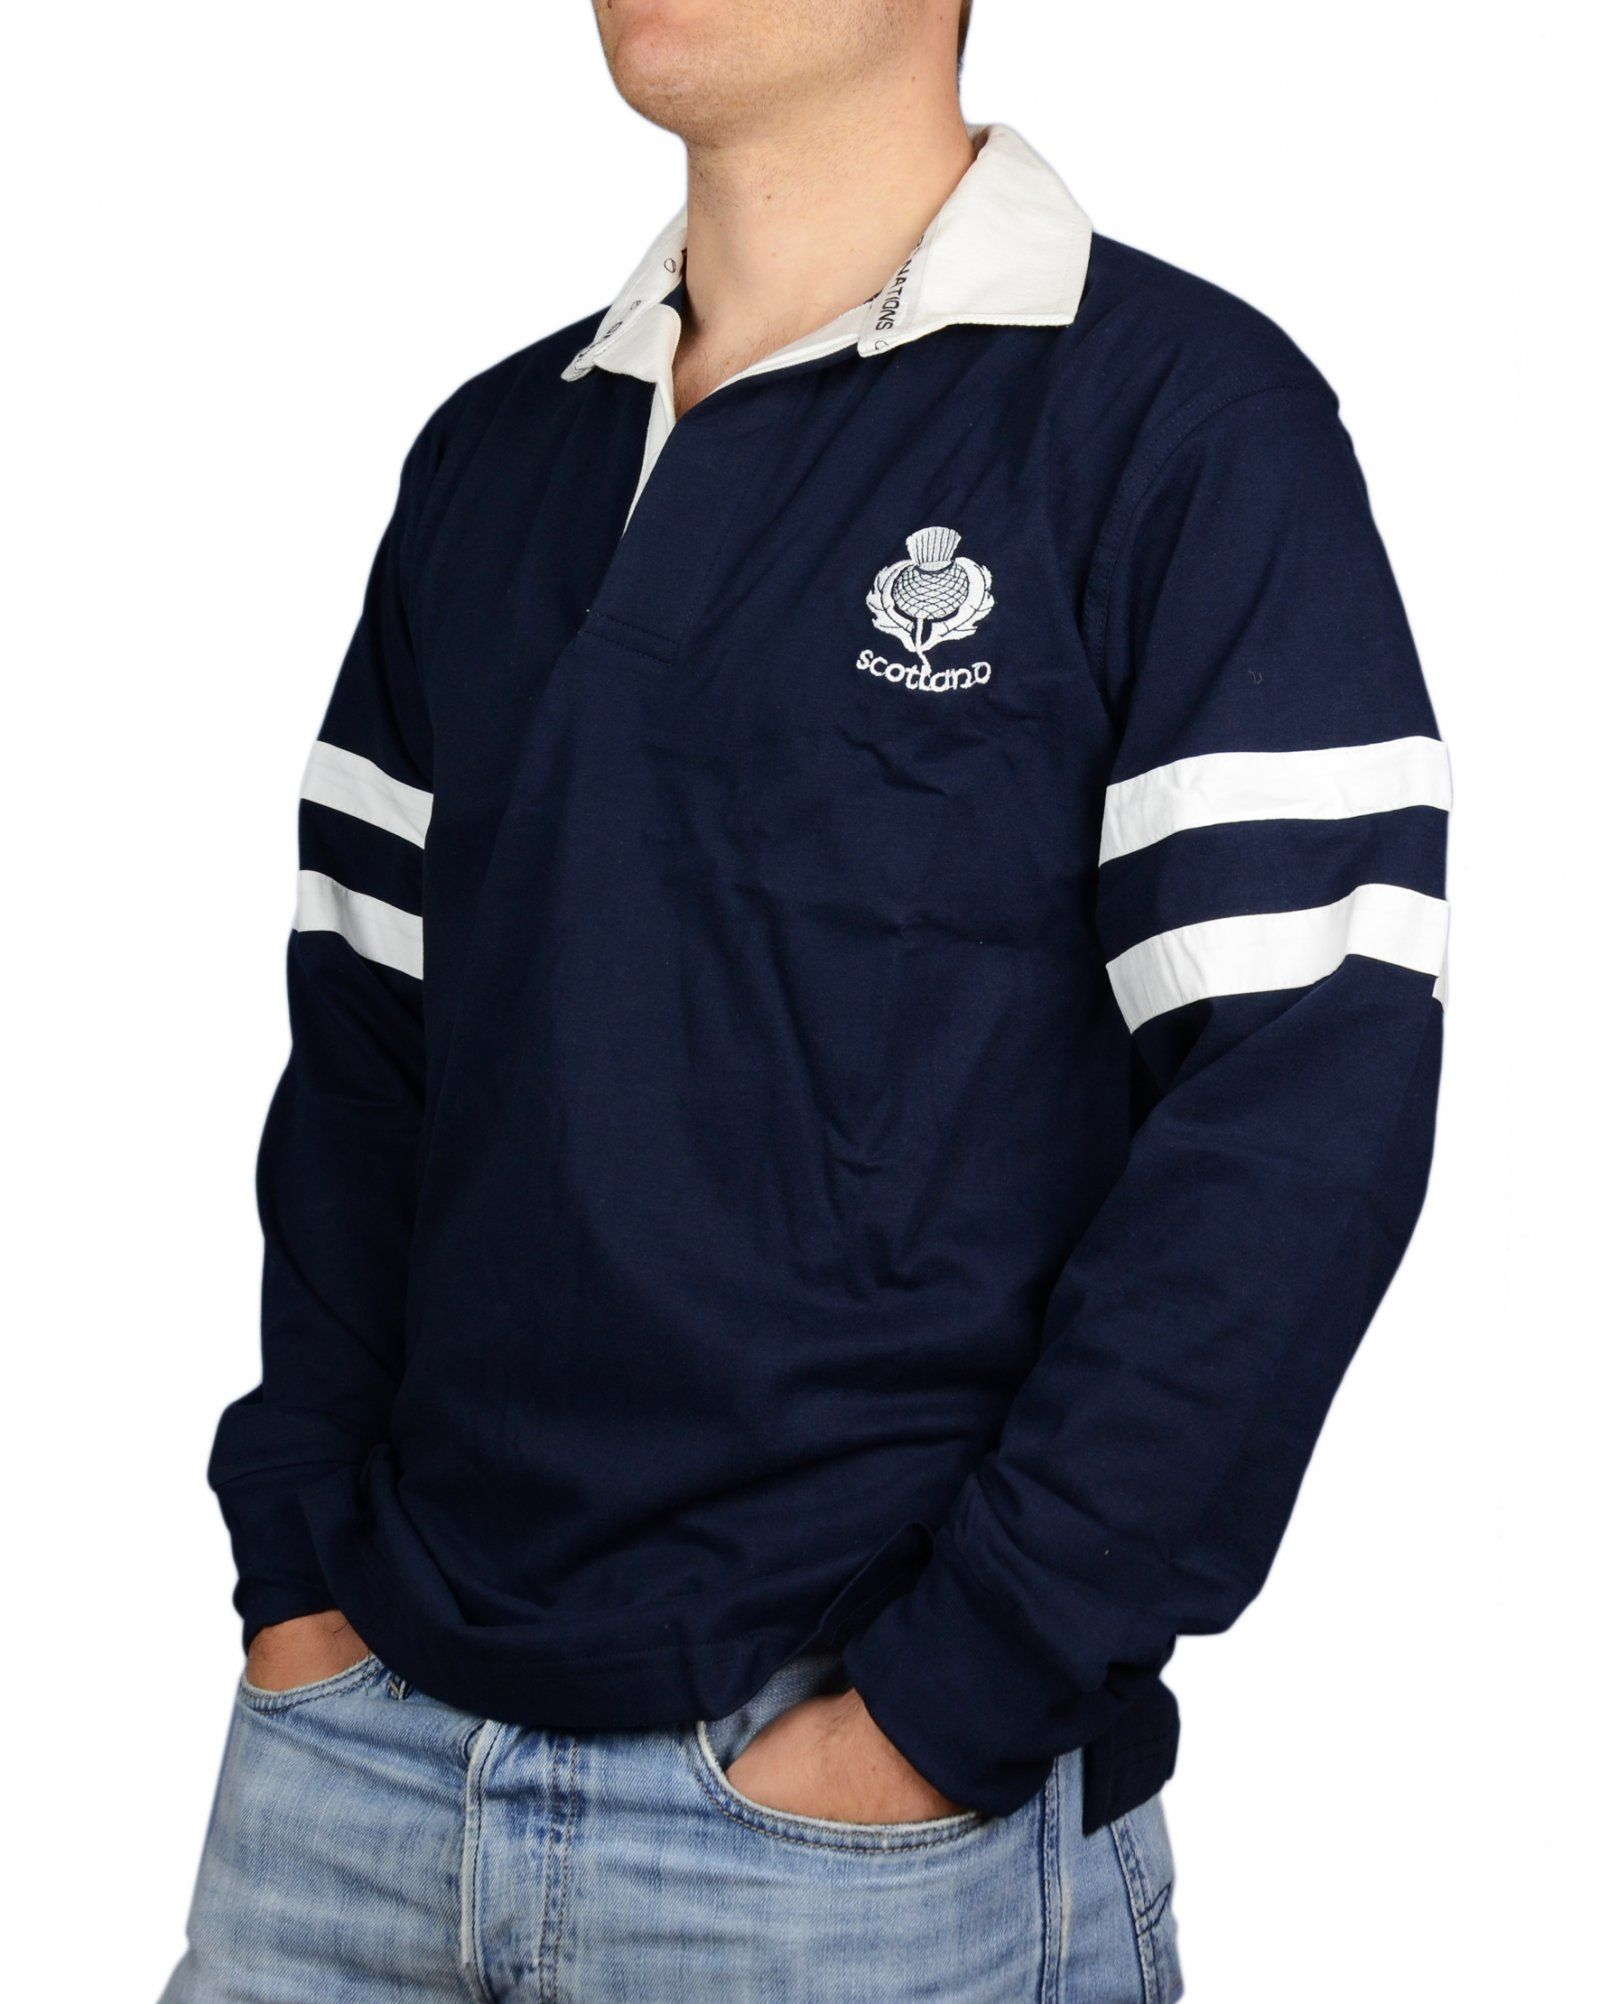 1d4ba6418 scotland-classic-long-sleeve-rugby-shirt-824-p.jpg